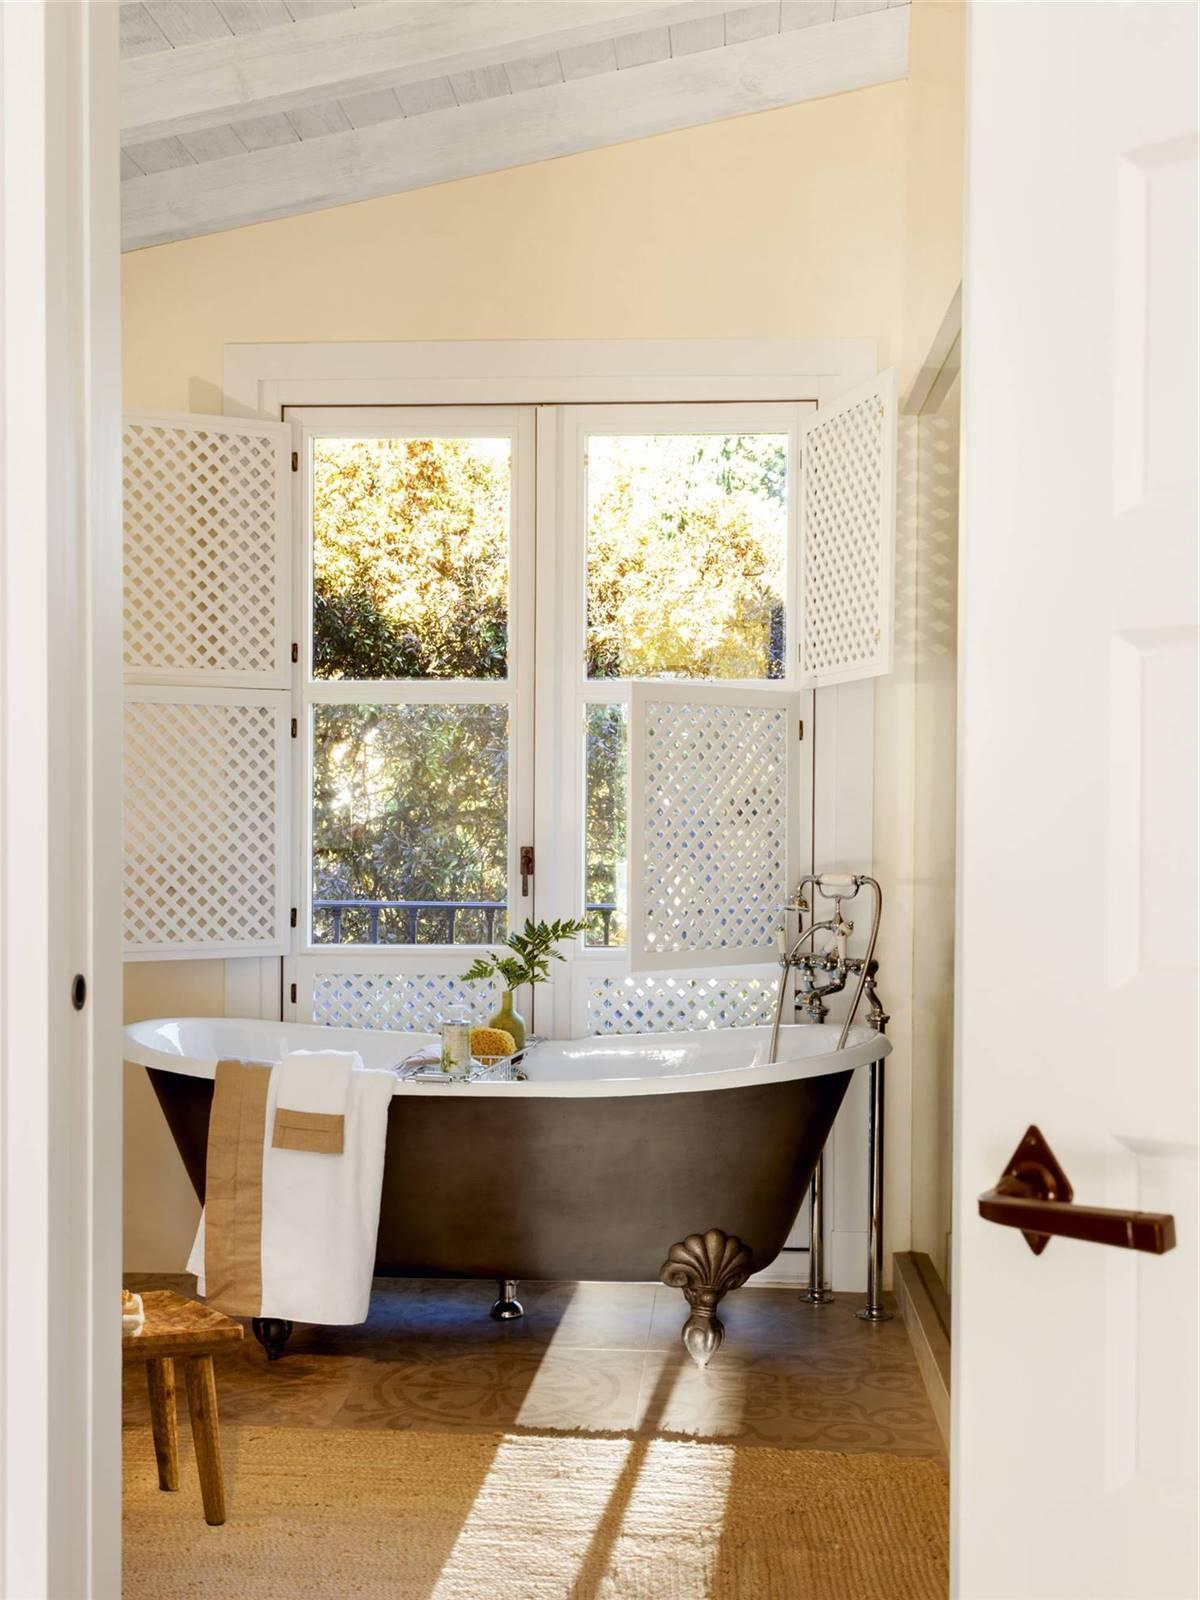 BATHTUBS WITH RETRO ESSENCE